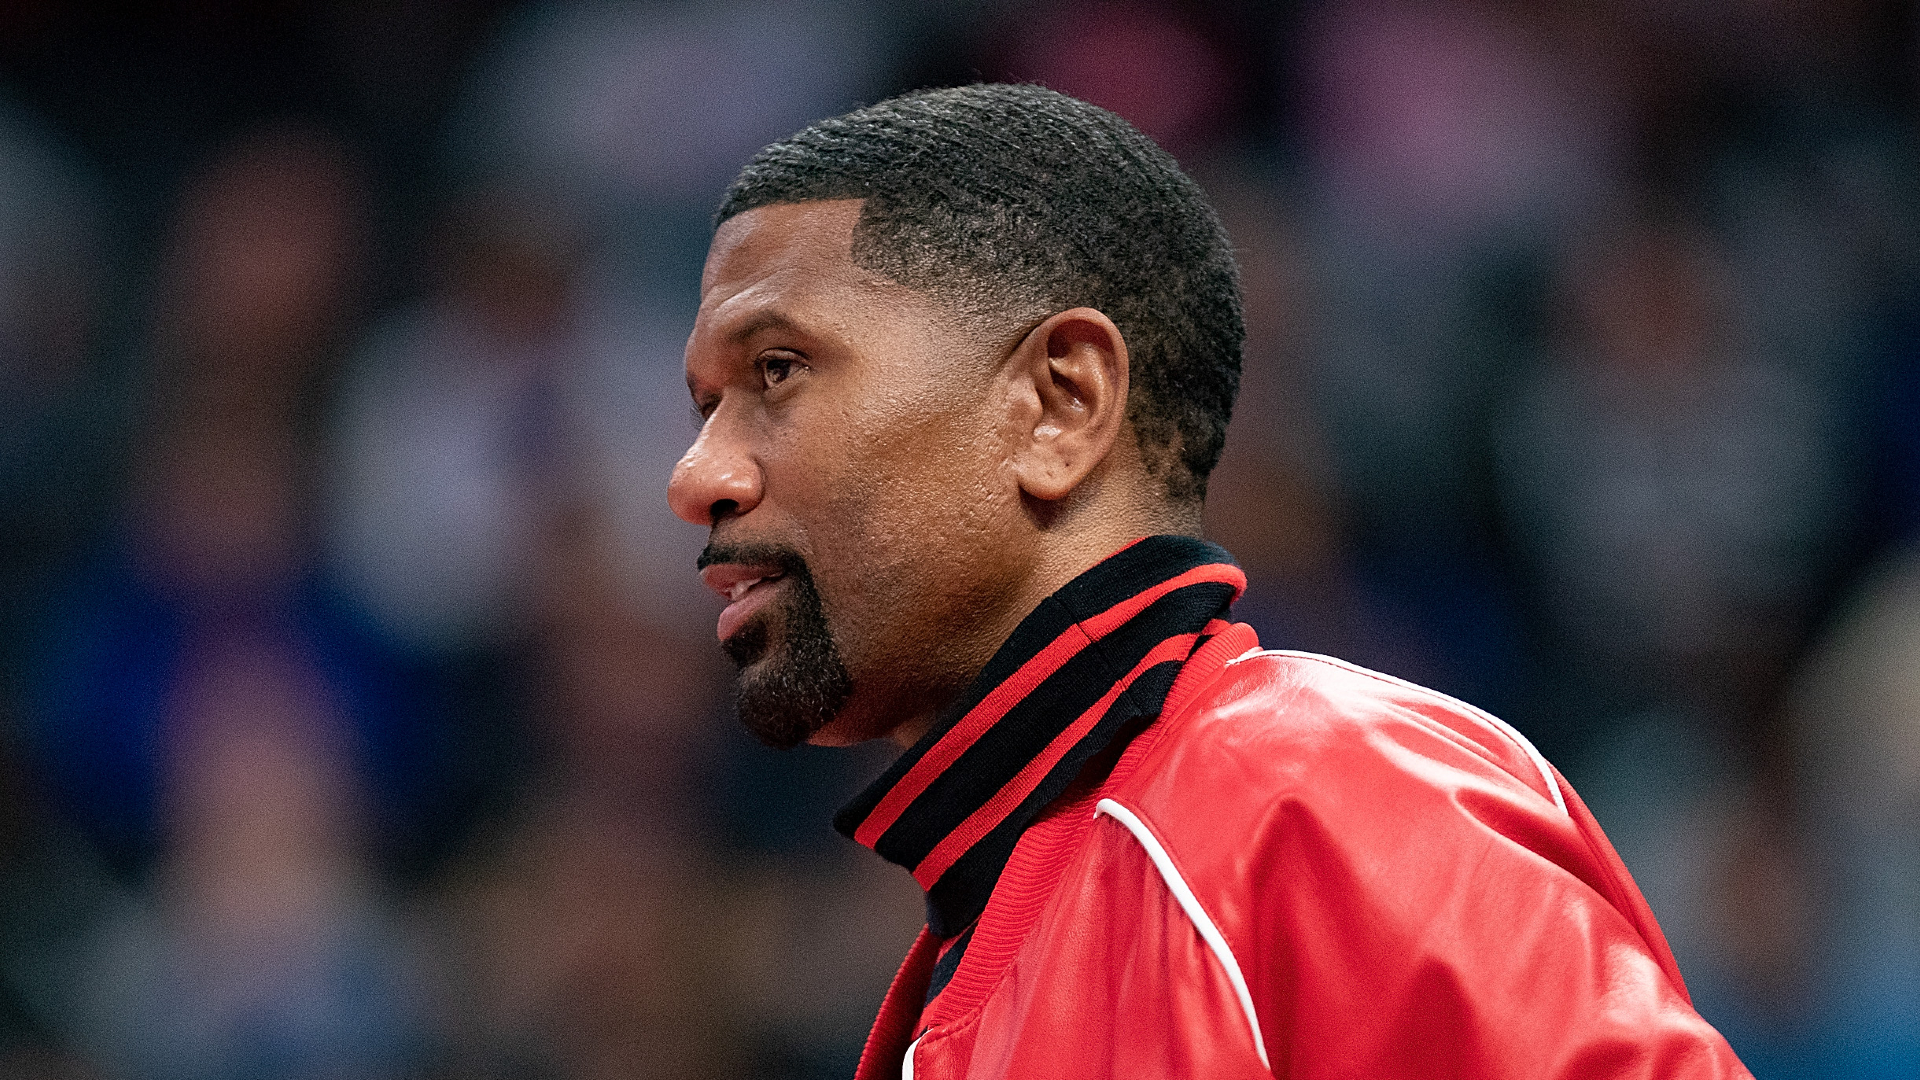 Jalen Rose moved to tears in tribute to mother, grandmother on Mother's Day